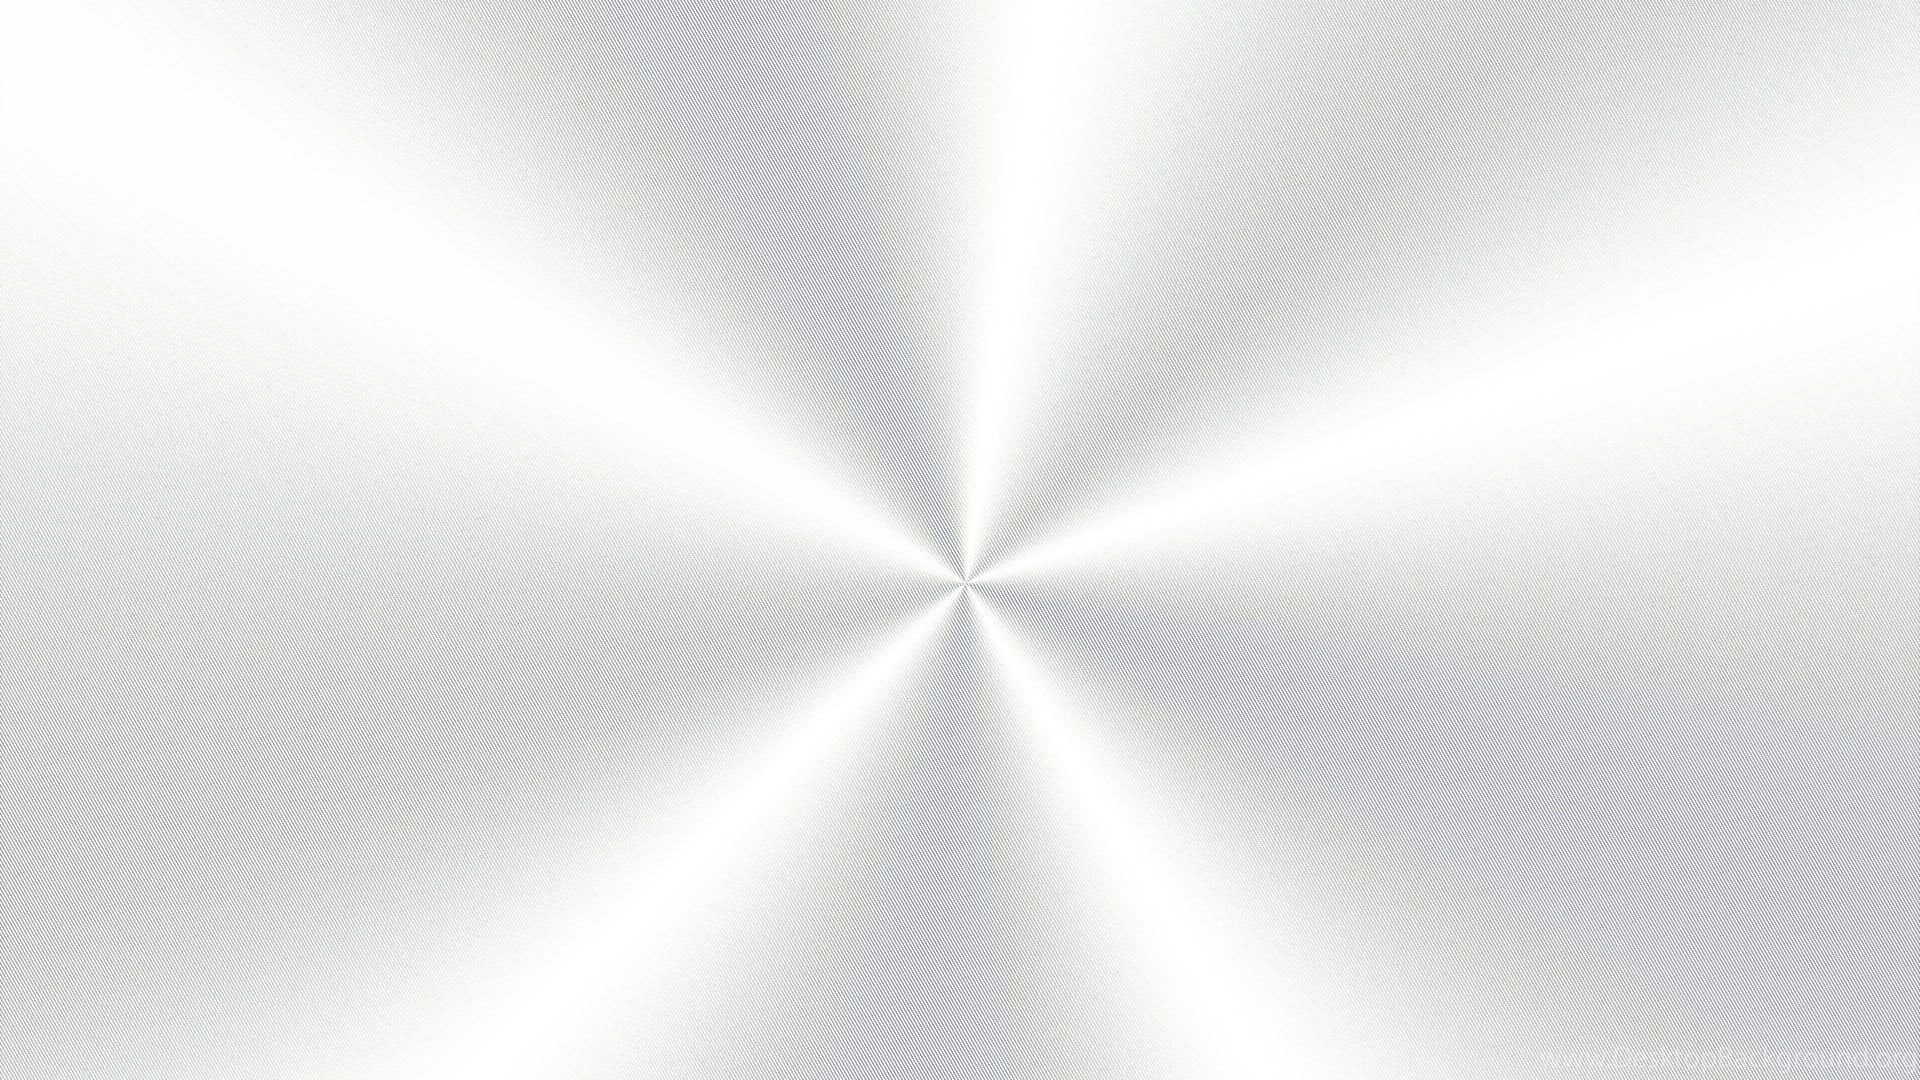 Silver Backgrounds Hd Posted By Christopher Peltier